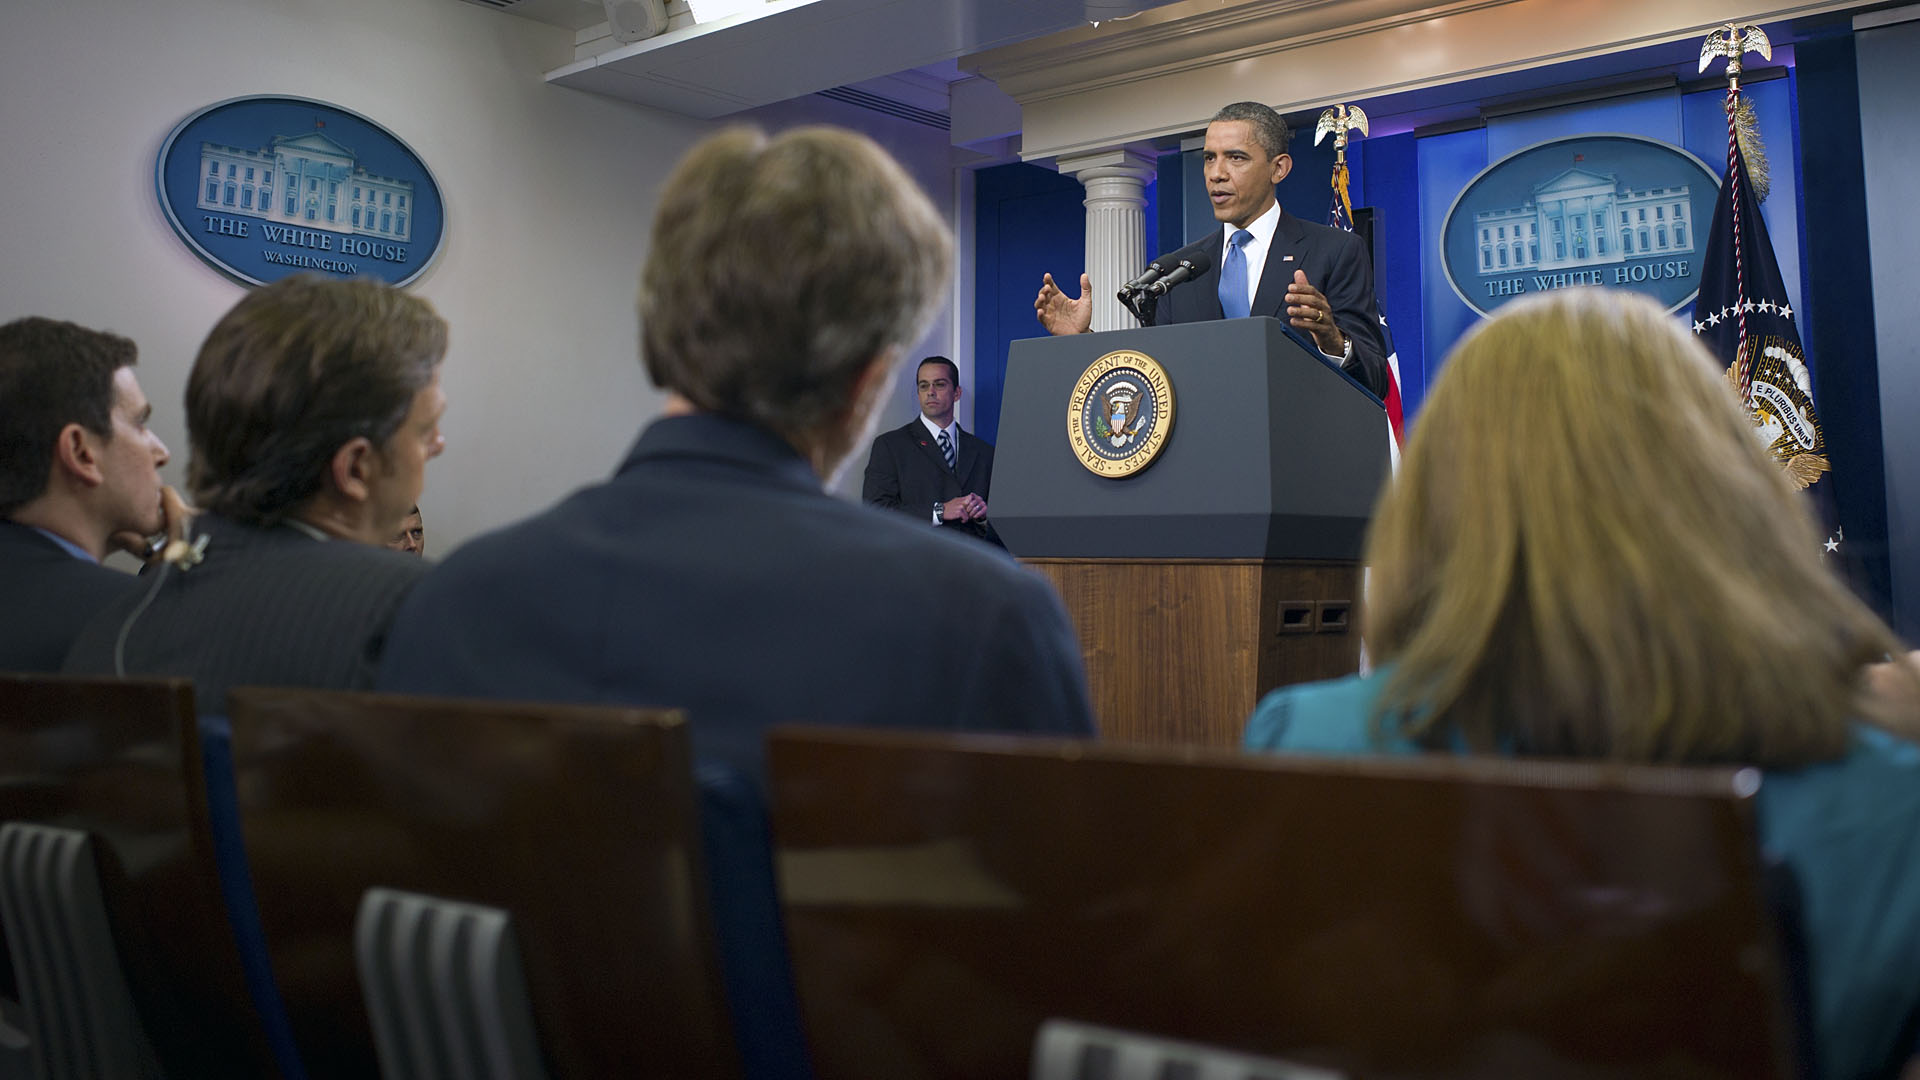 President Barack Obama responds to a question during a news conference in the James S. Brady Press Briefing Room